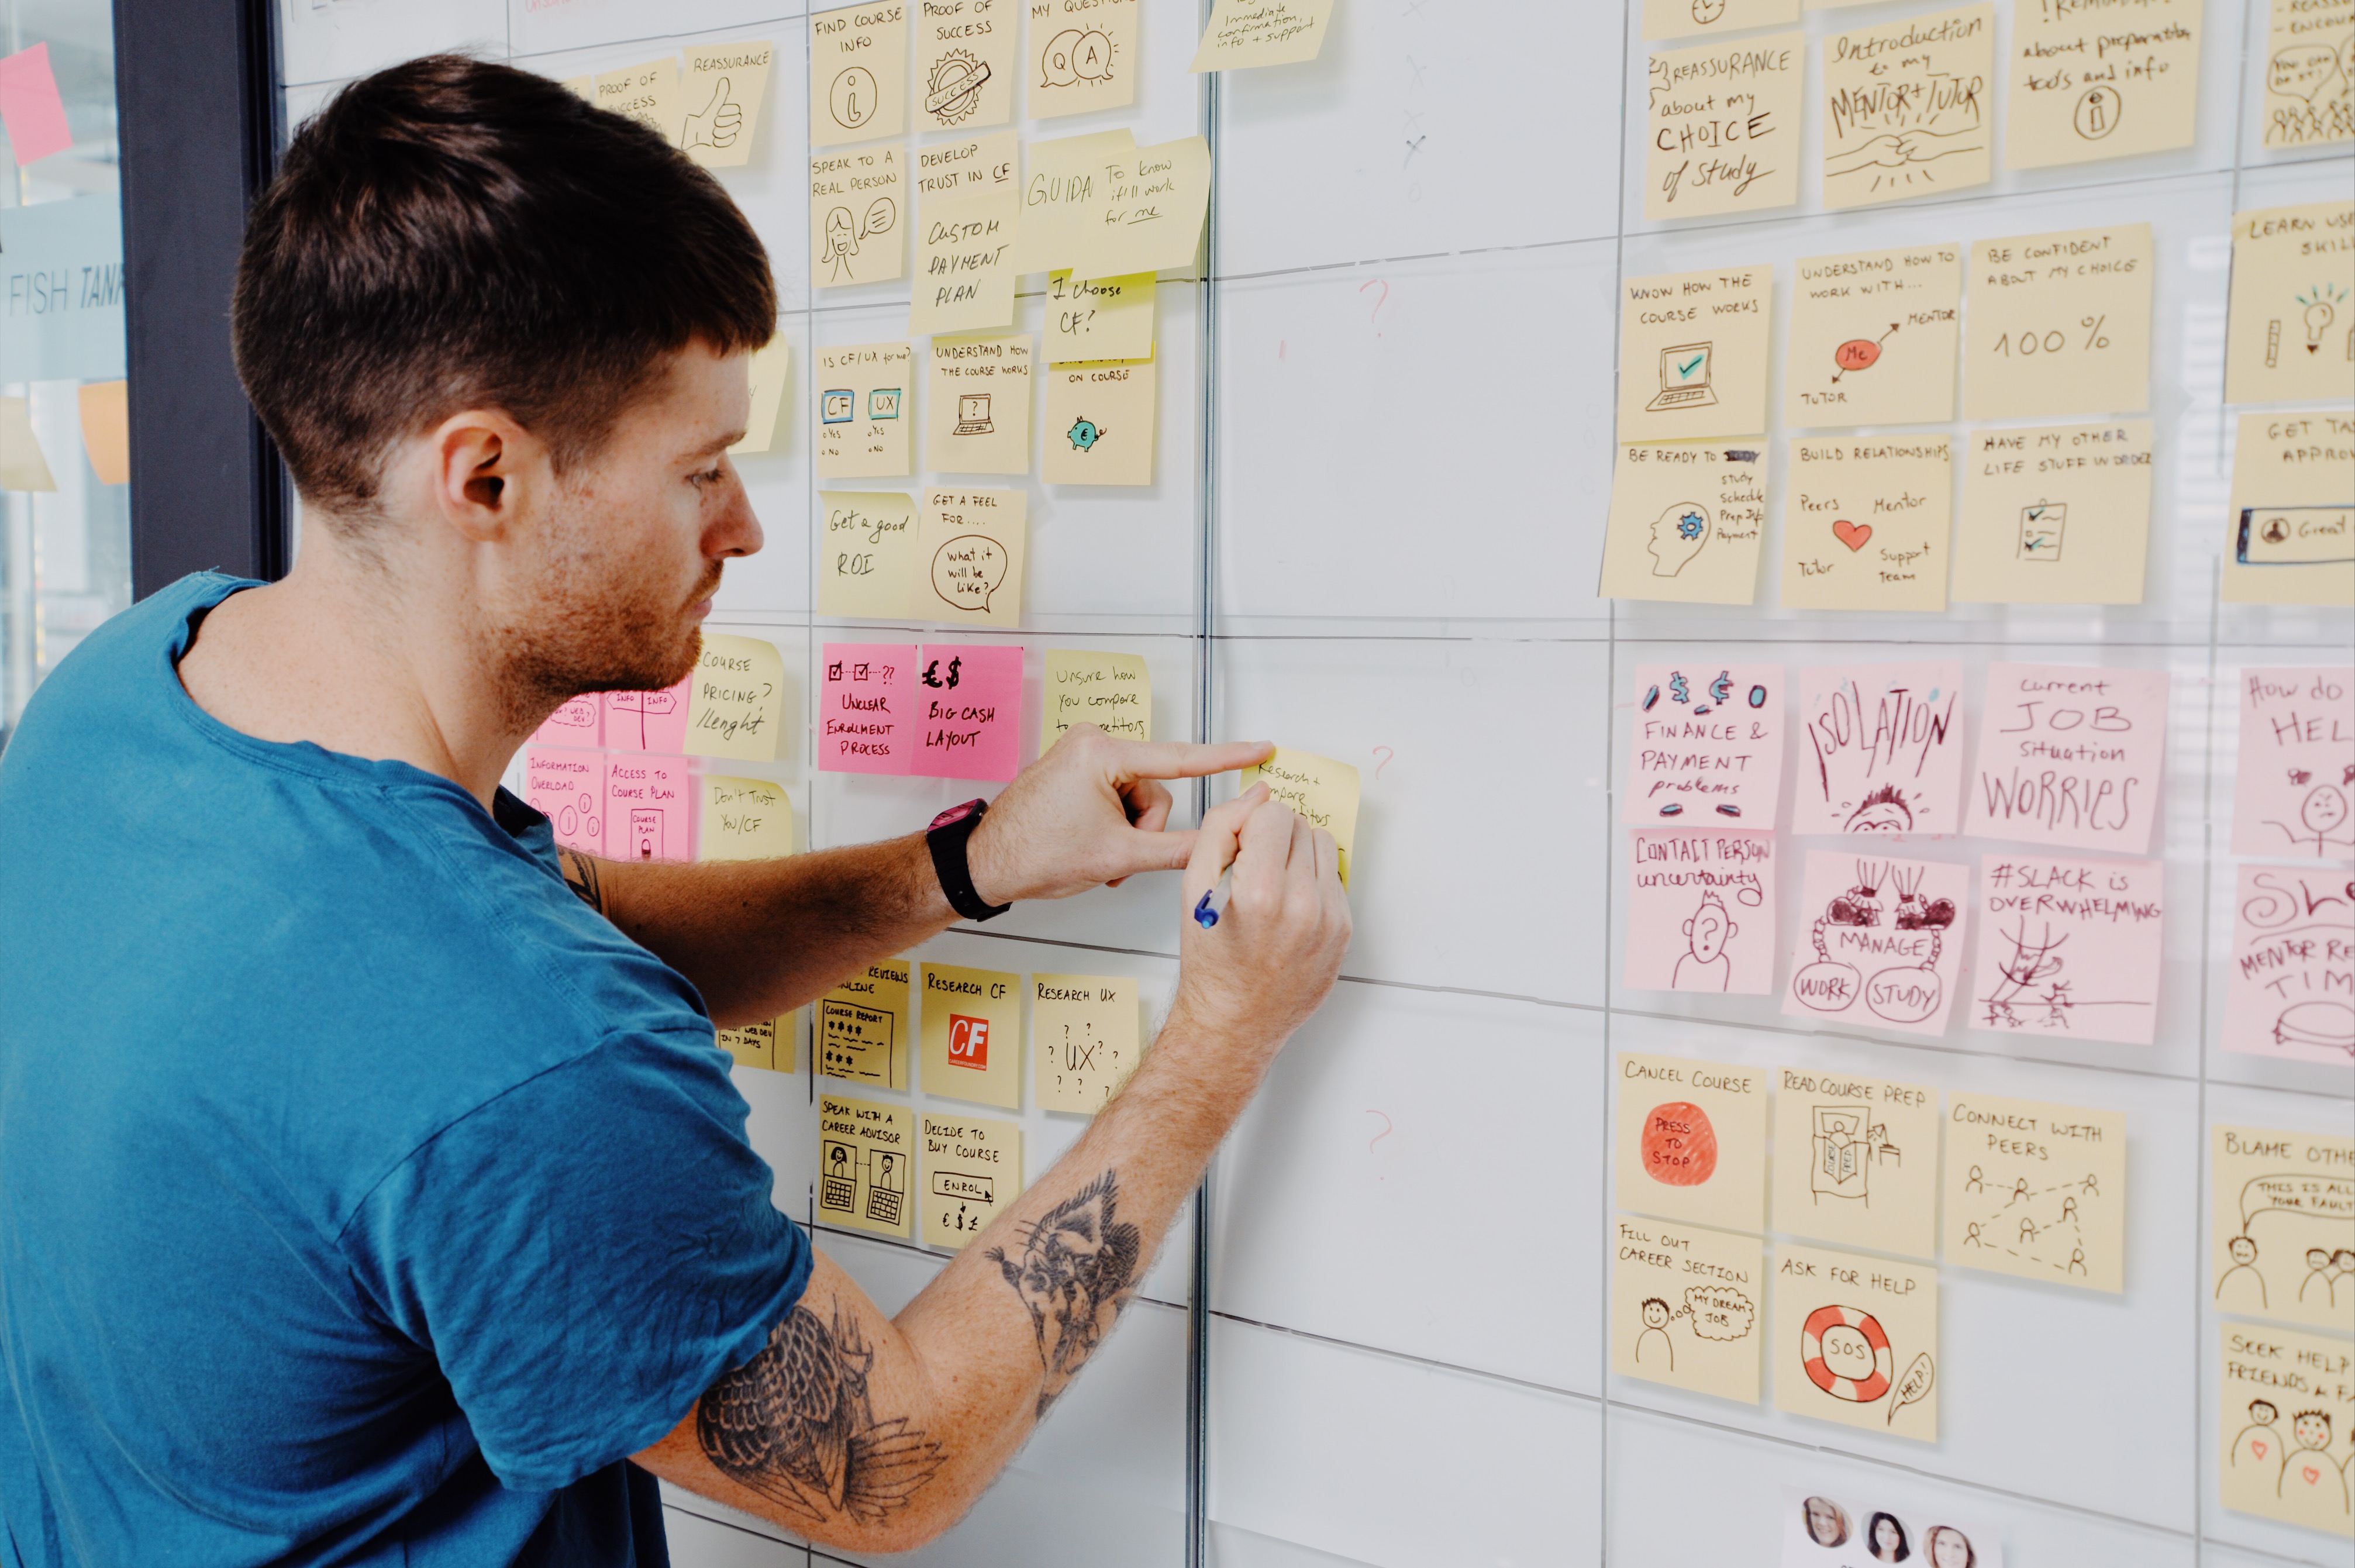 Man sticking post-its with ideas and illustrations onto a board